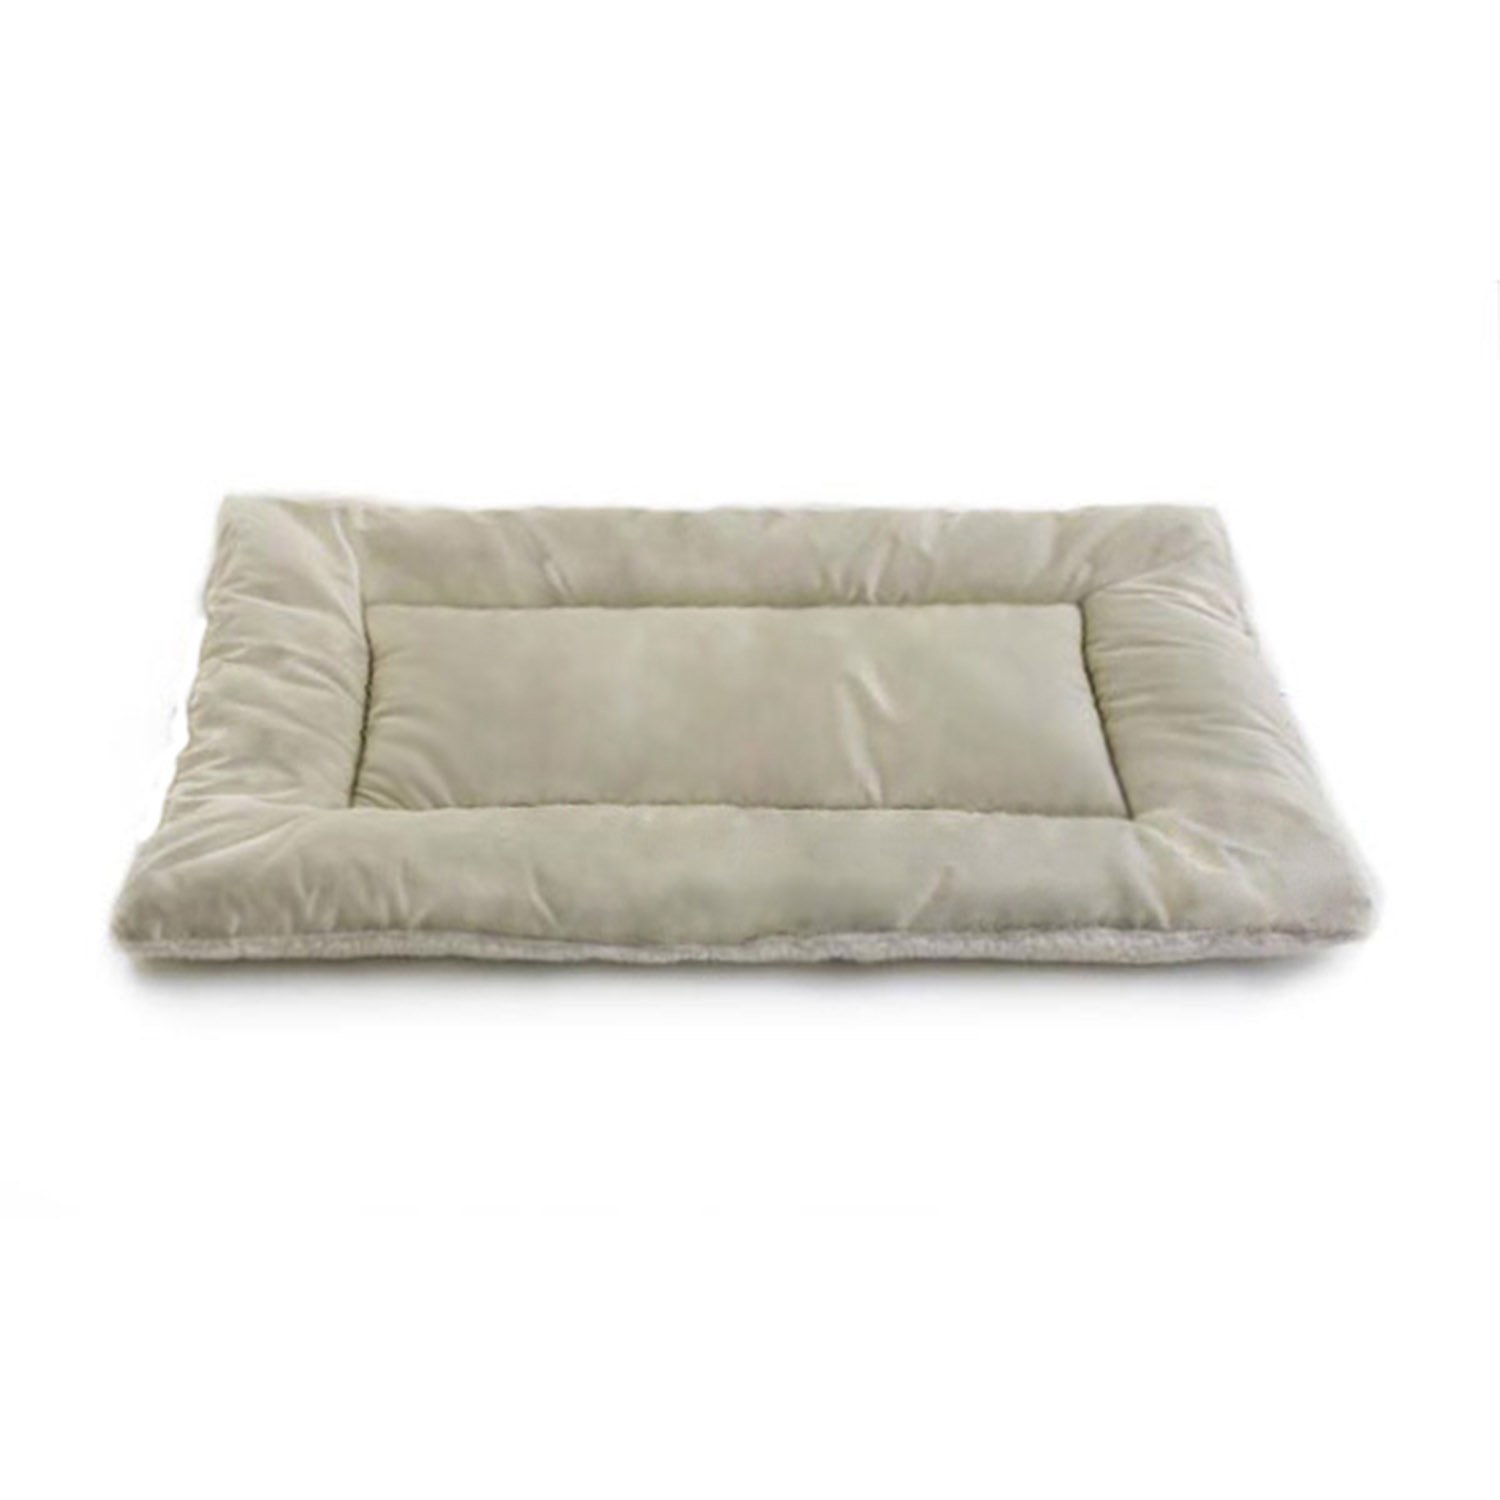 2 in 1 All Season Crate Bedding, XX-Large Fits Midwest 48  Crate- Khaki Tan by Pet Dreams